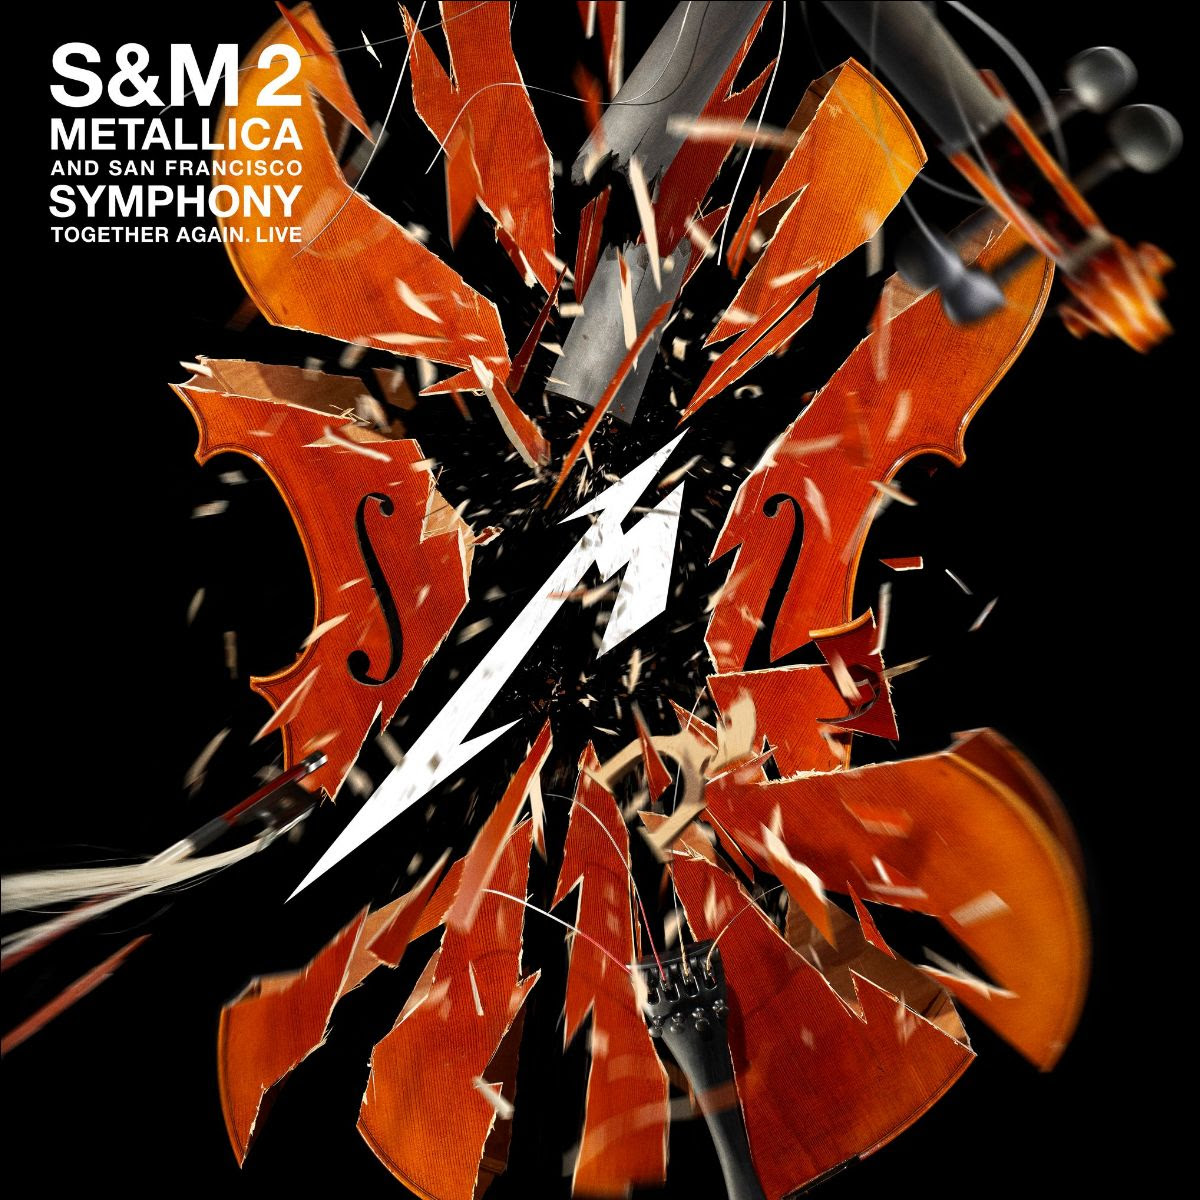 Metallica & San Francisco Symphony: S&M2 Live Album And Documentary Due August 28